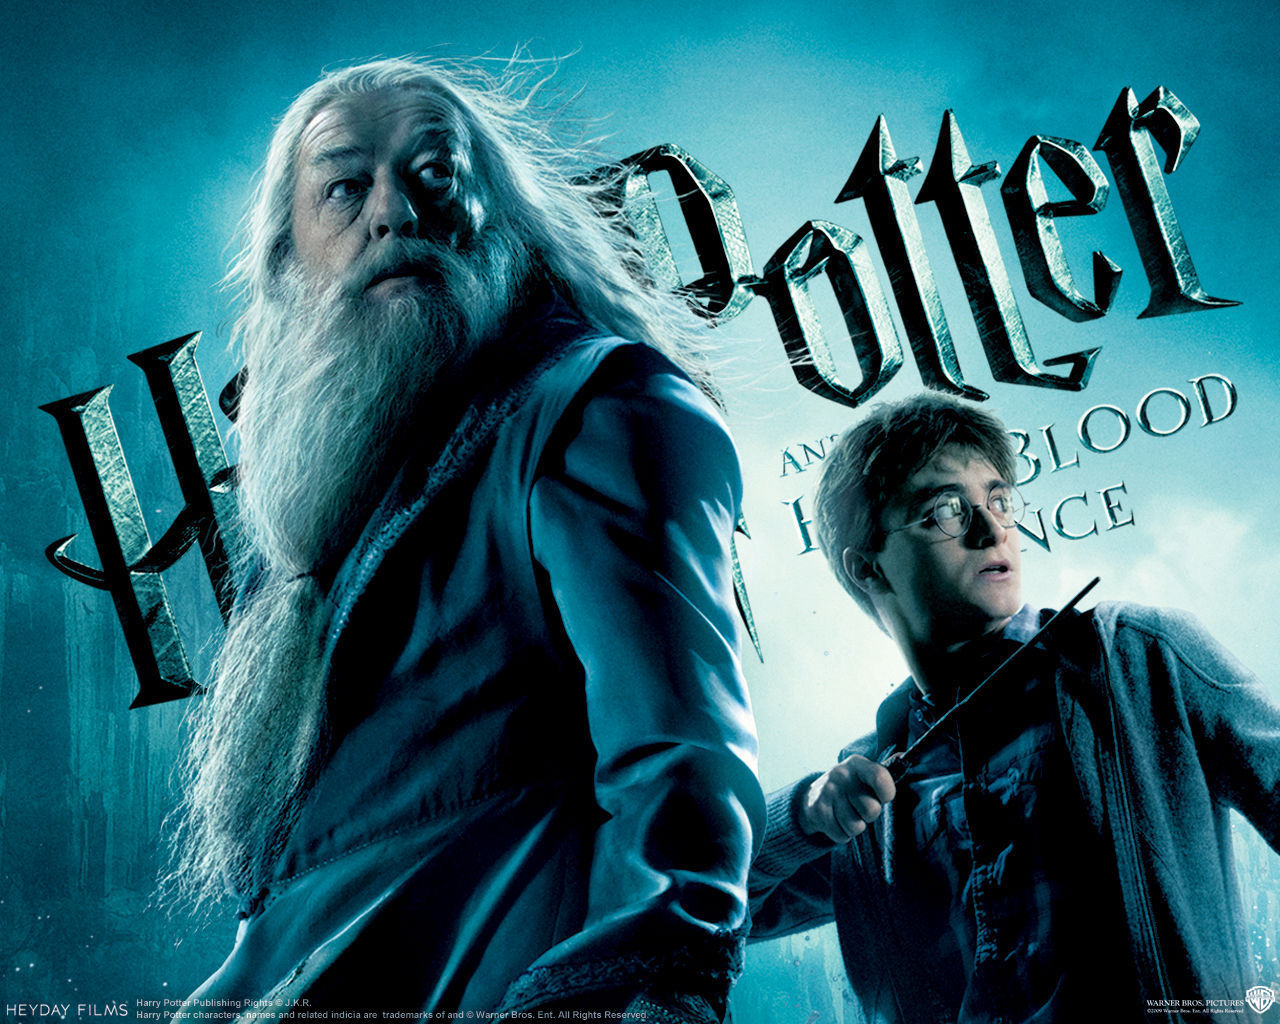 the half - blood prince images harry potter and the half-blood